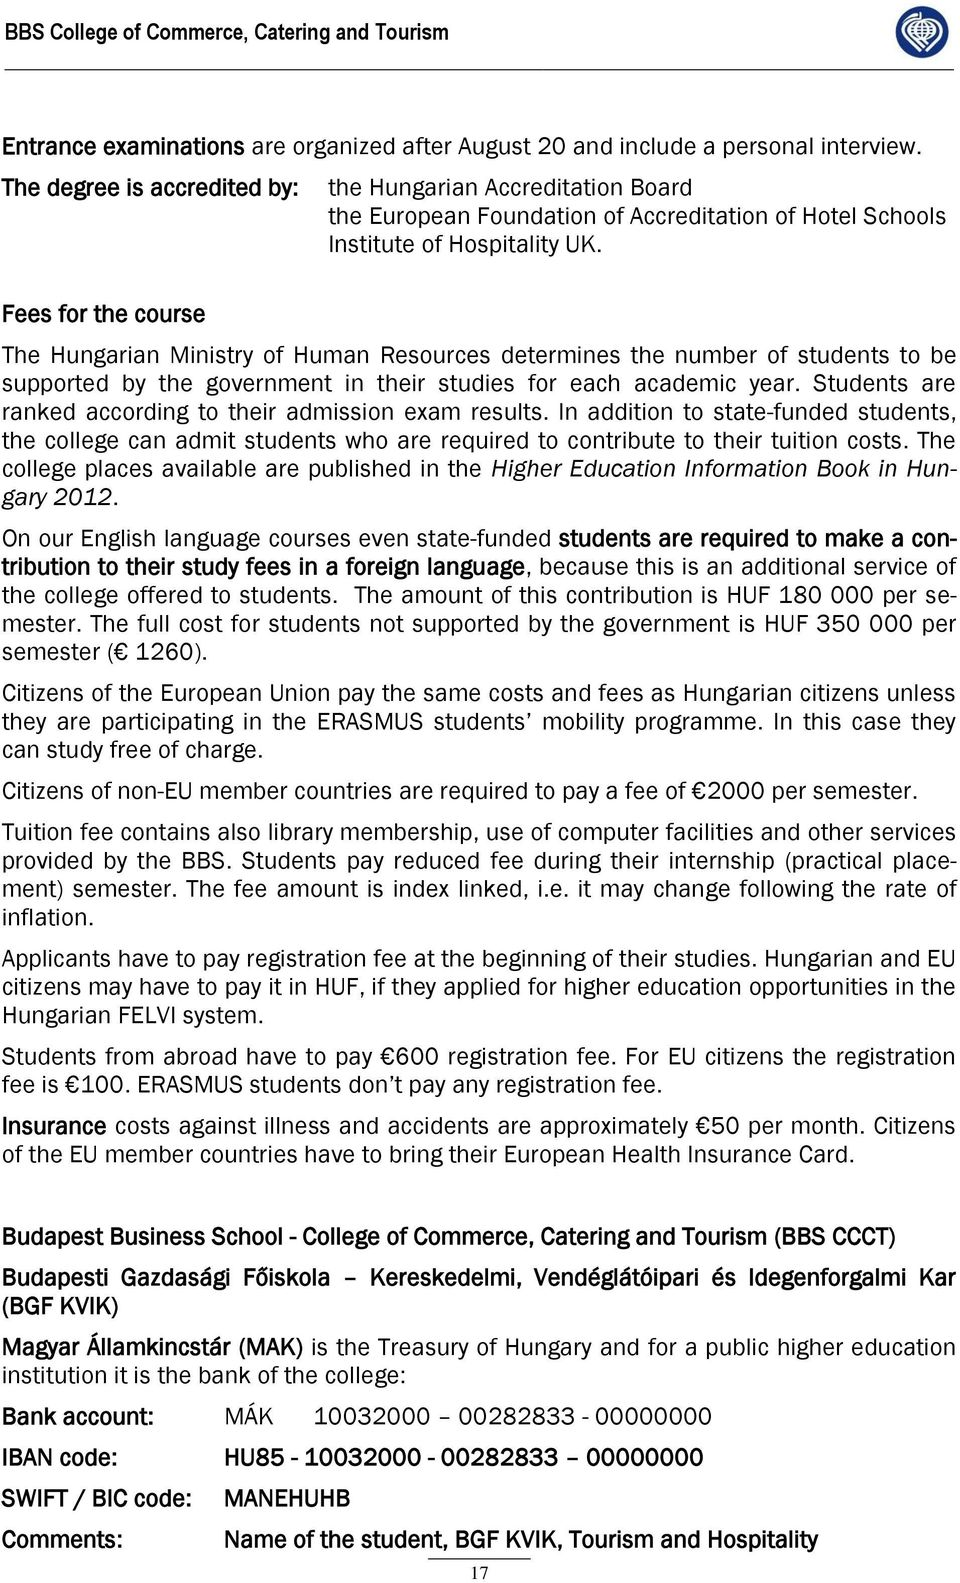 The Hungarian Ministry of Human Resources determines the number of students to be supported by the government in their studies for each academic year.